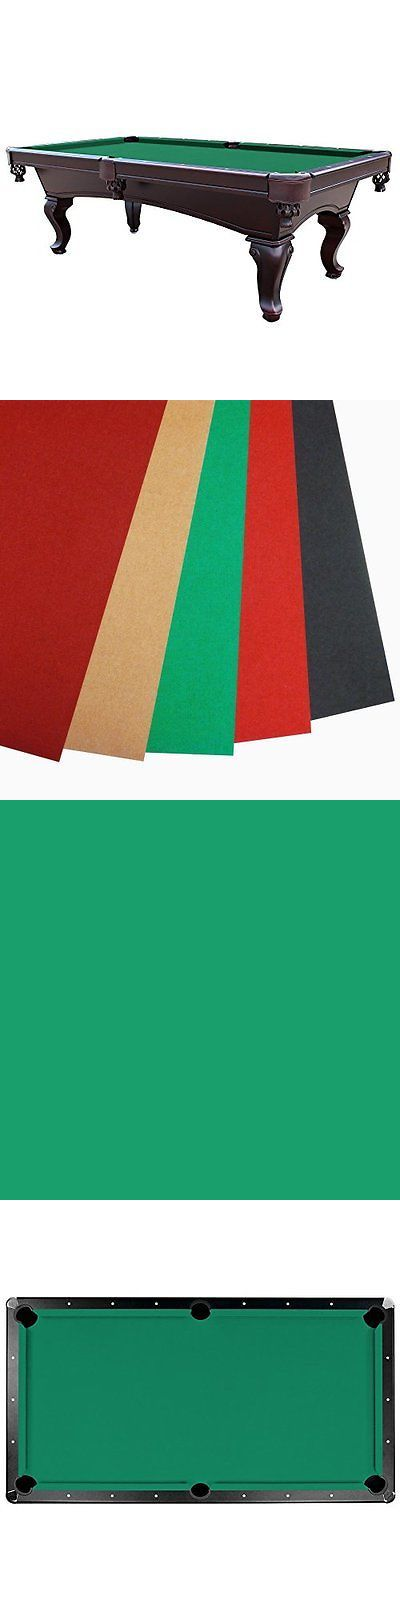 Tables 21213: New Championship Saturn Ii Billiards Cloth Pool Table Felt Green 7 Feet -> BUY IT NOW ONLY: $109.07 on eBay!